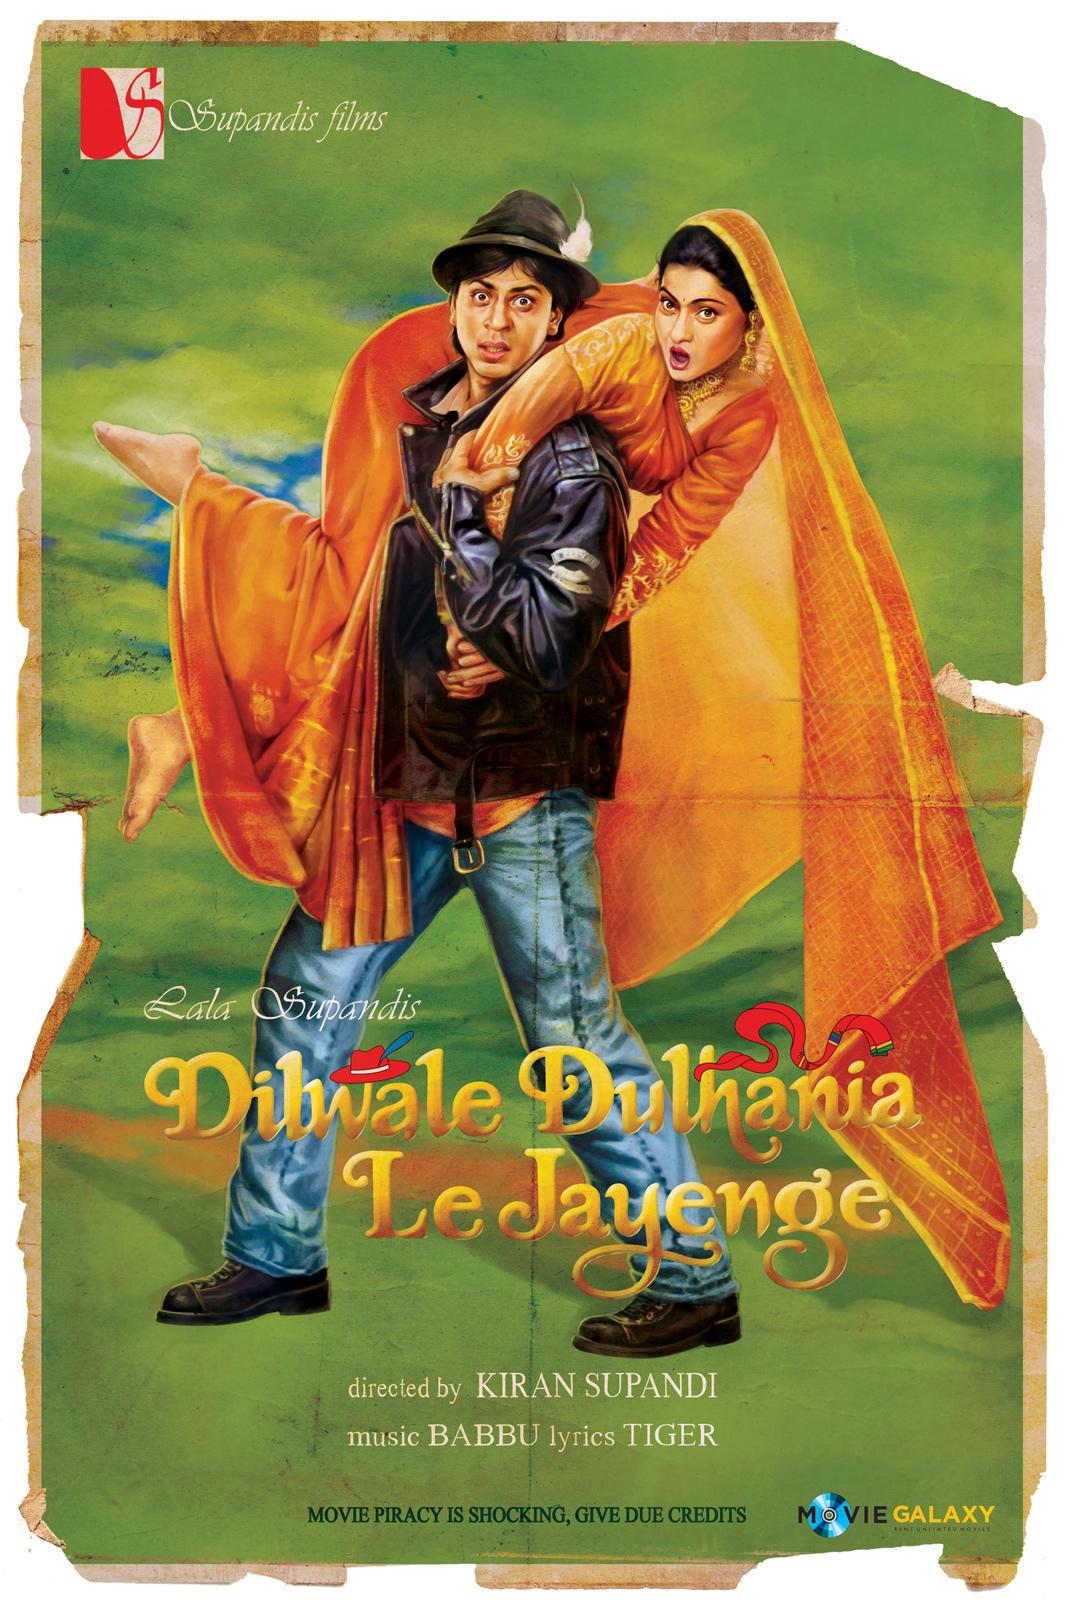 Movie Galaxy Outdoor Ad -  Piracy is Shocking, Dilwale Dulhaniya Le Jayenge